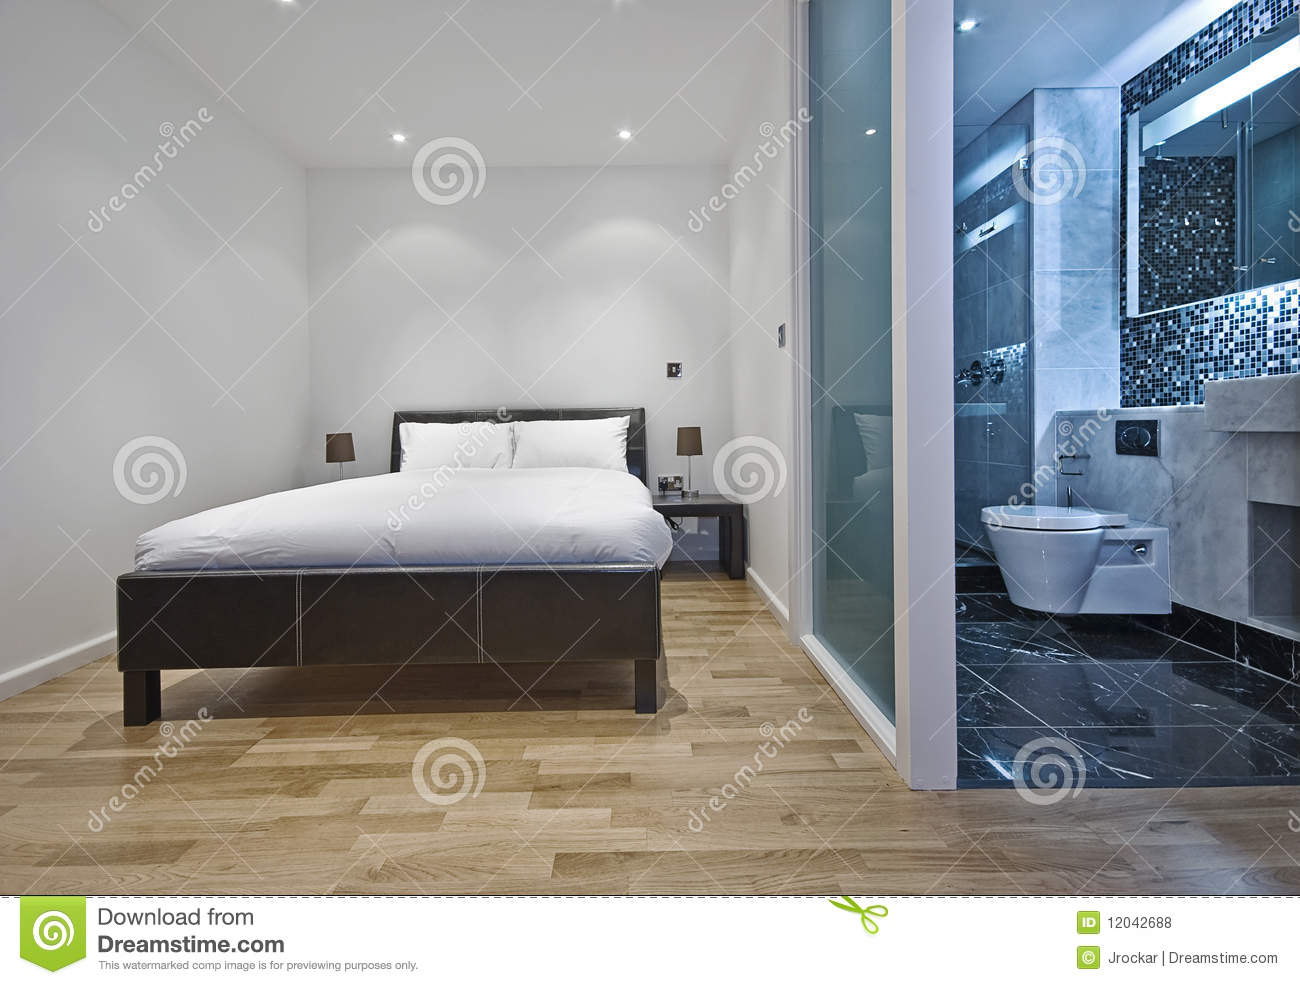 Bedroom with en suite bathroom stock photo image 12042688 for Bedroom with ensuite designs